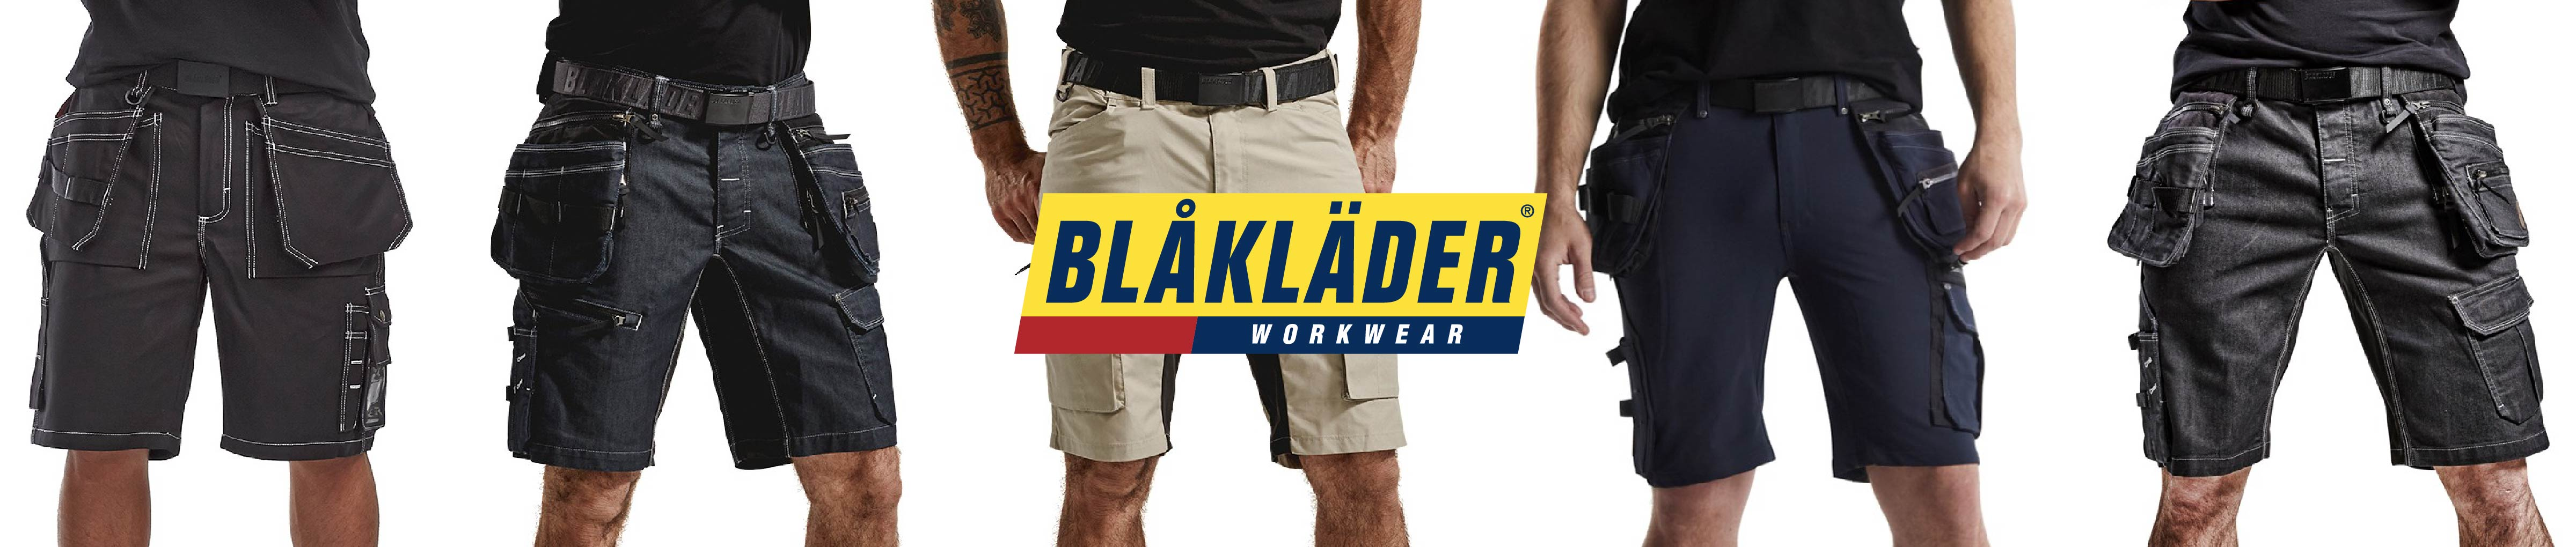 Short work trousers